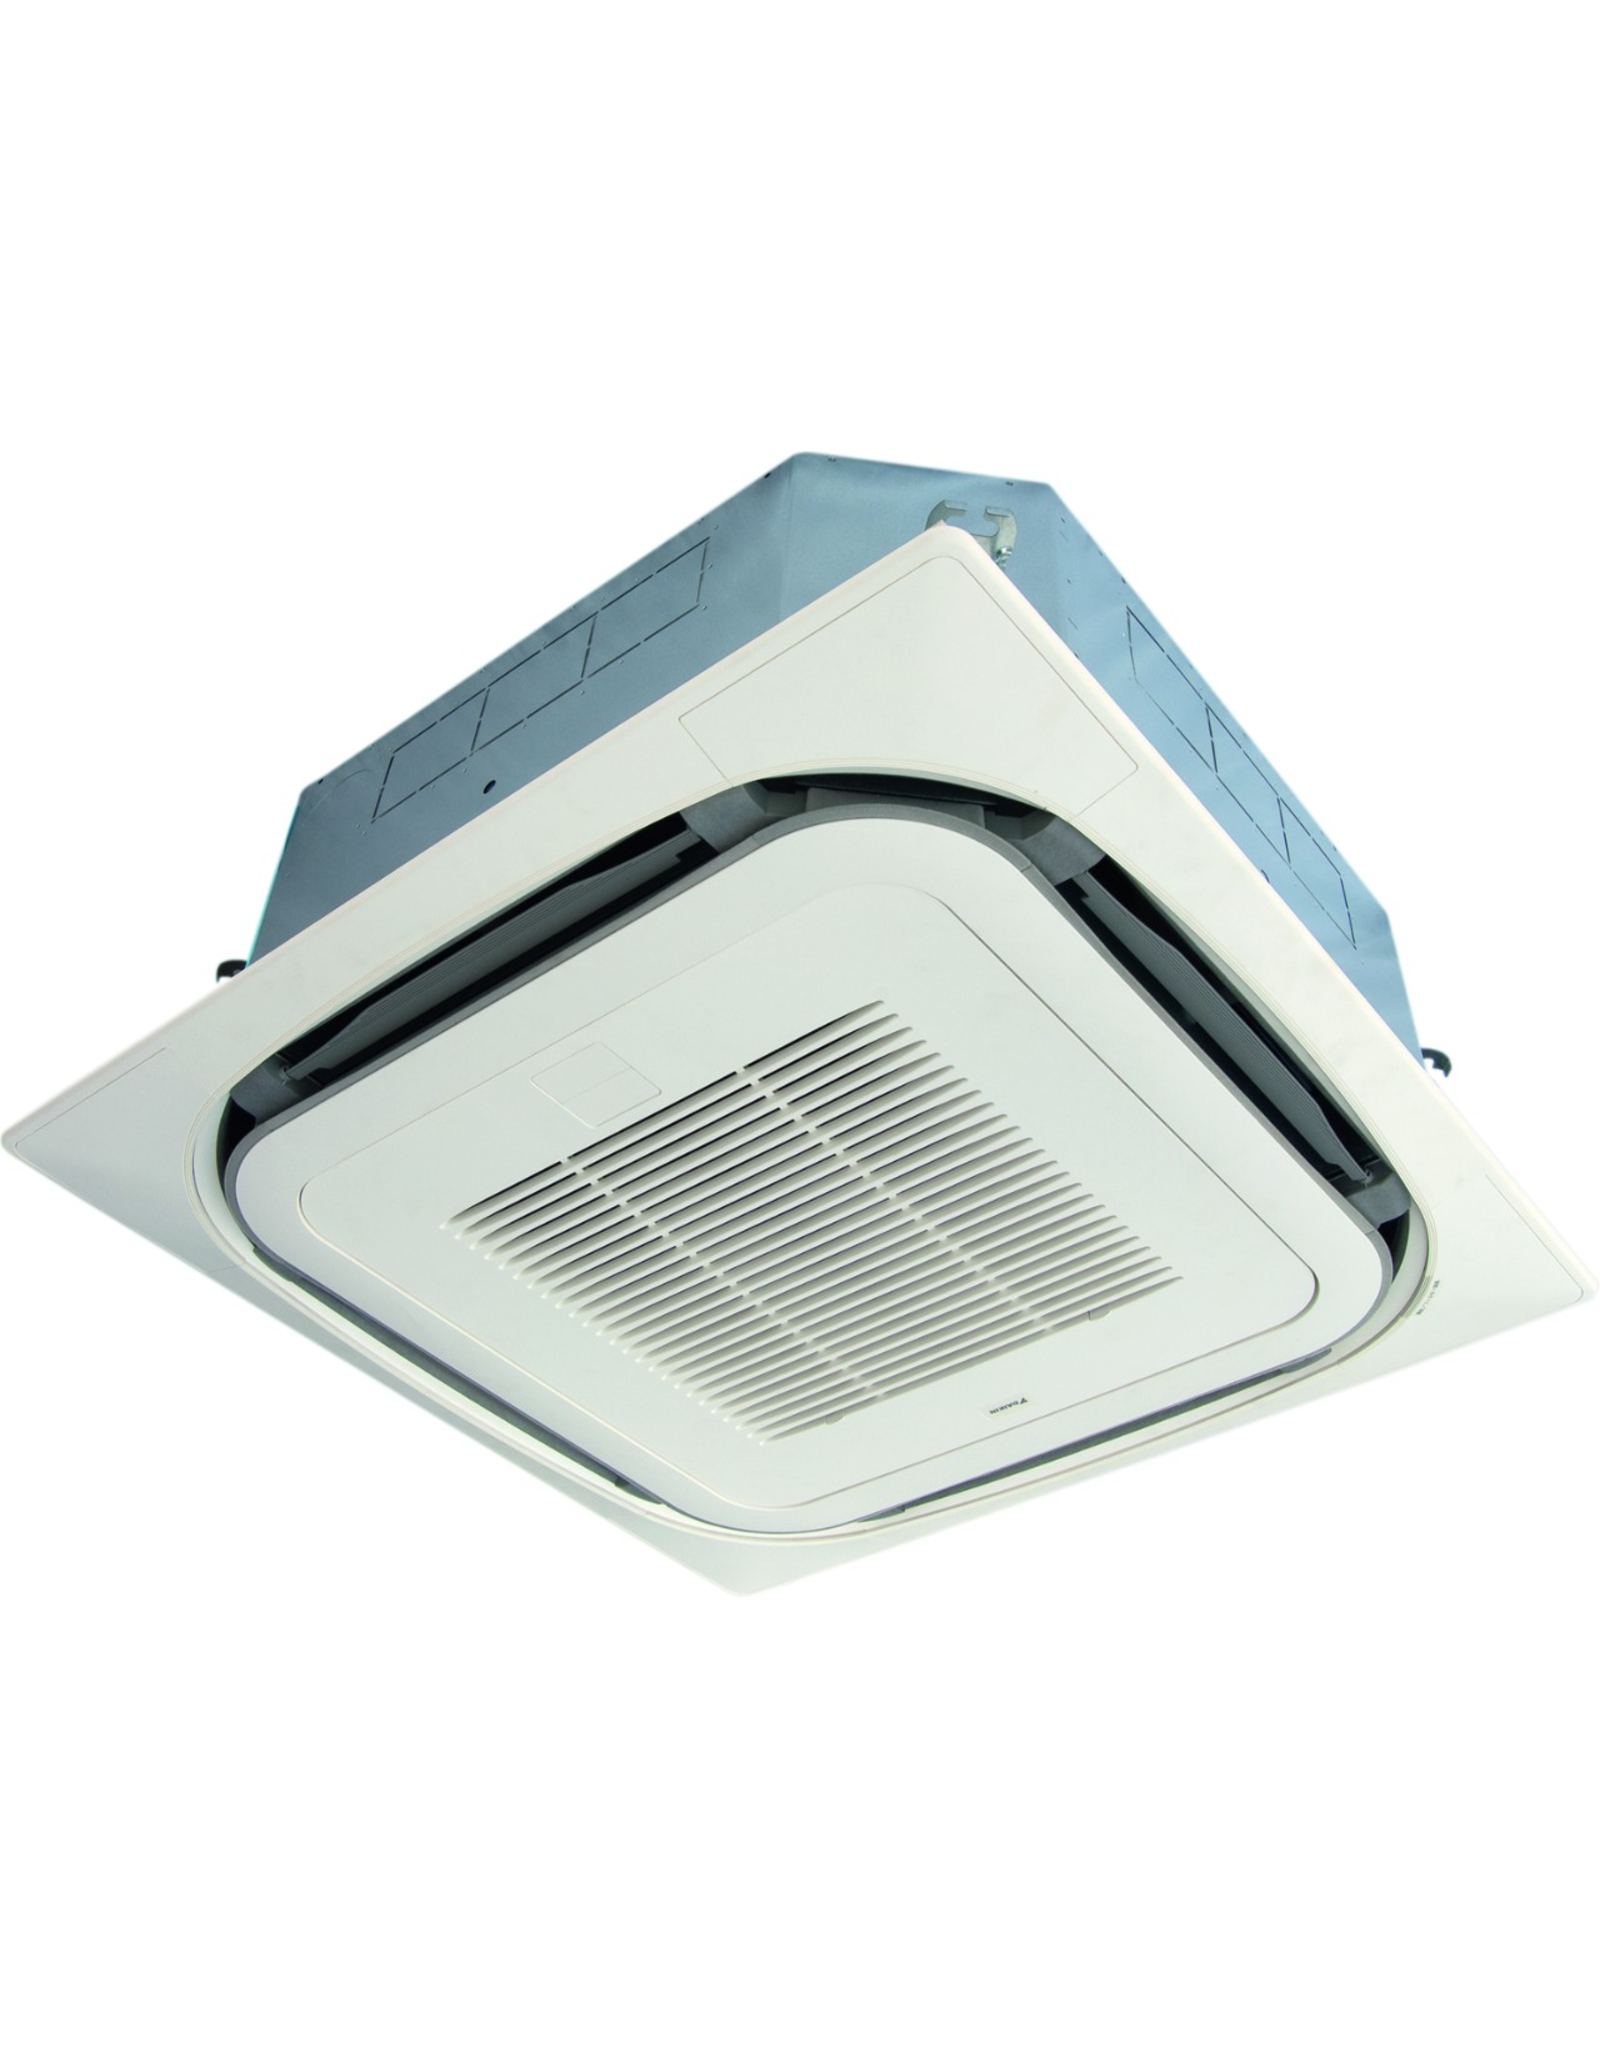 Daikin Applied Americas Self Cleaning Decoration Panel  for SkyAir FCQ Cassette System